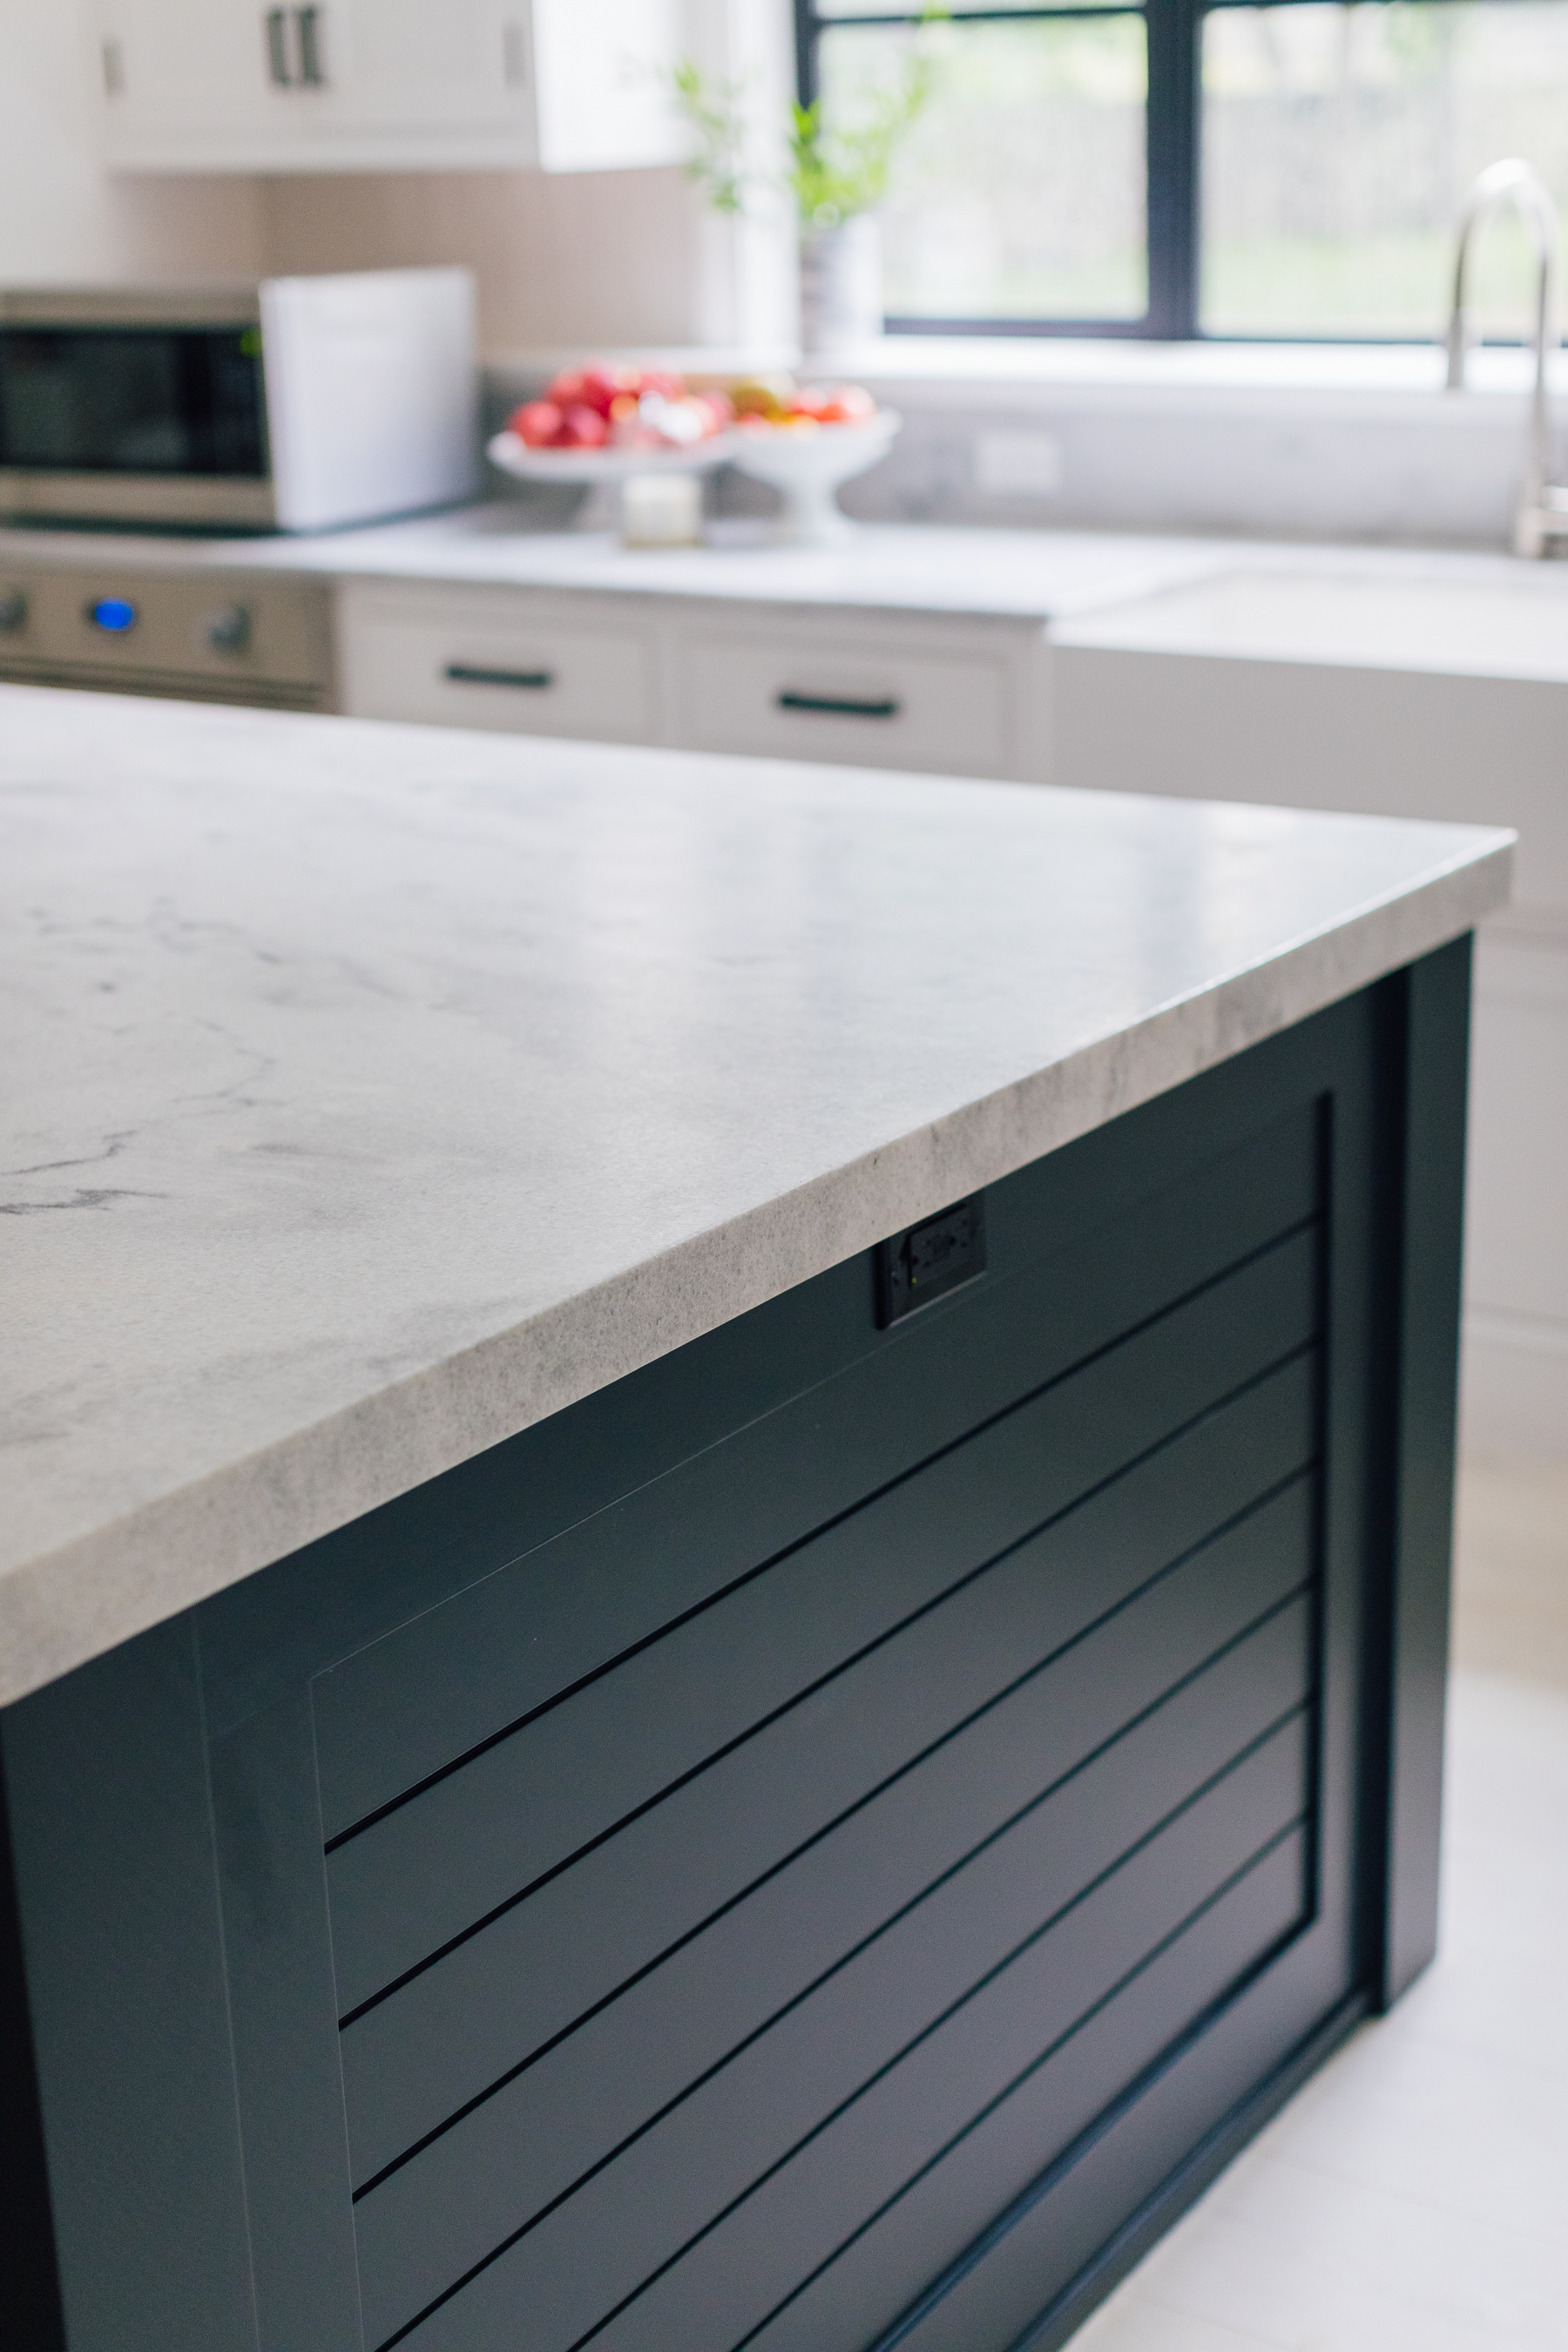 olycor - Happily Eva After - White Cherokee marble kitchen 3 edge of counter